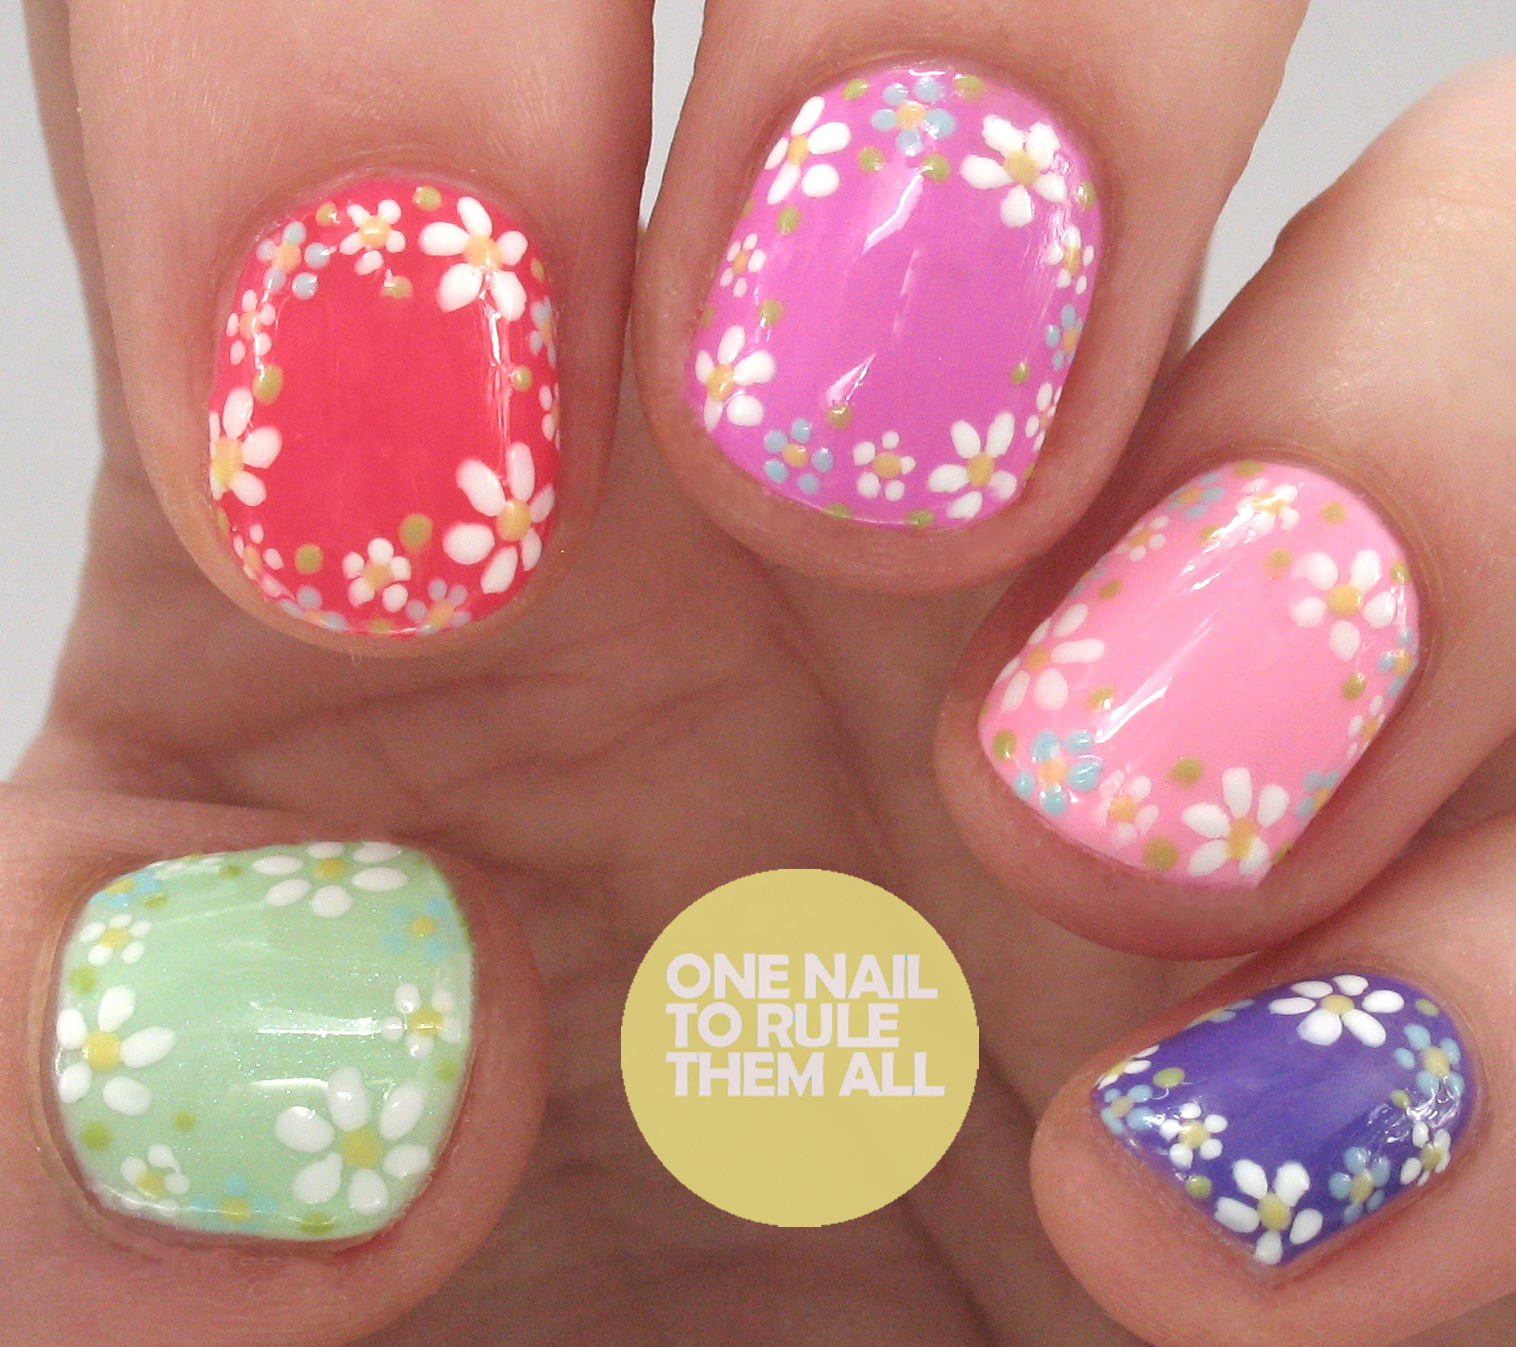 One nail to rule them all gelish hello pretty collection floral one nail to rule them all gelish hello pretty collection floral outline nail art prinsesfo Choice Image